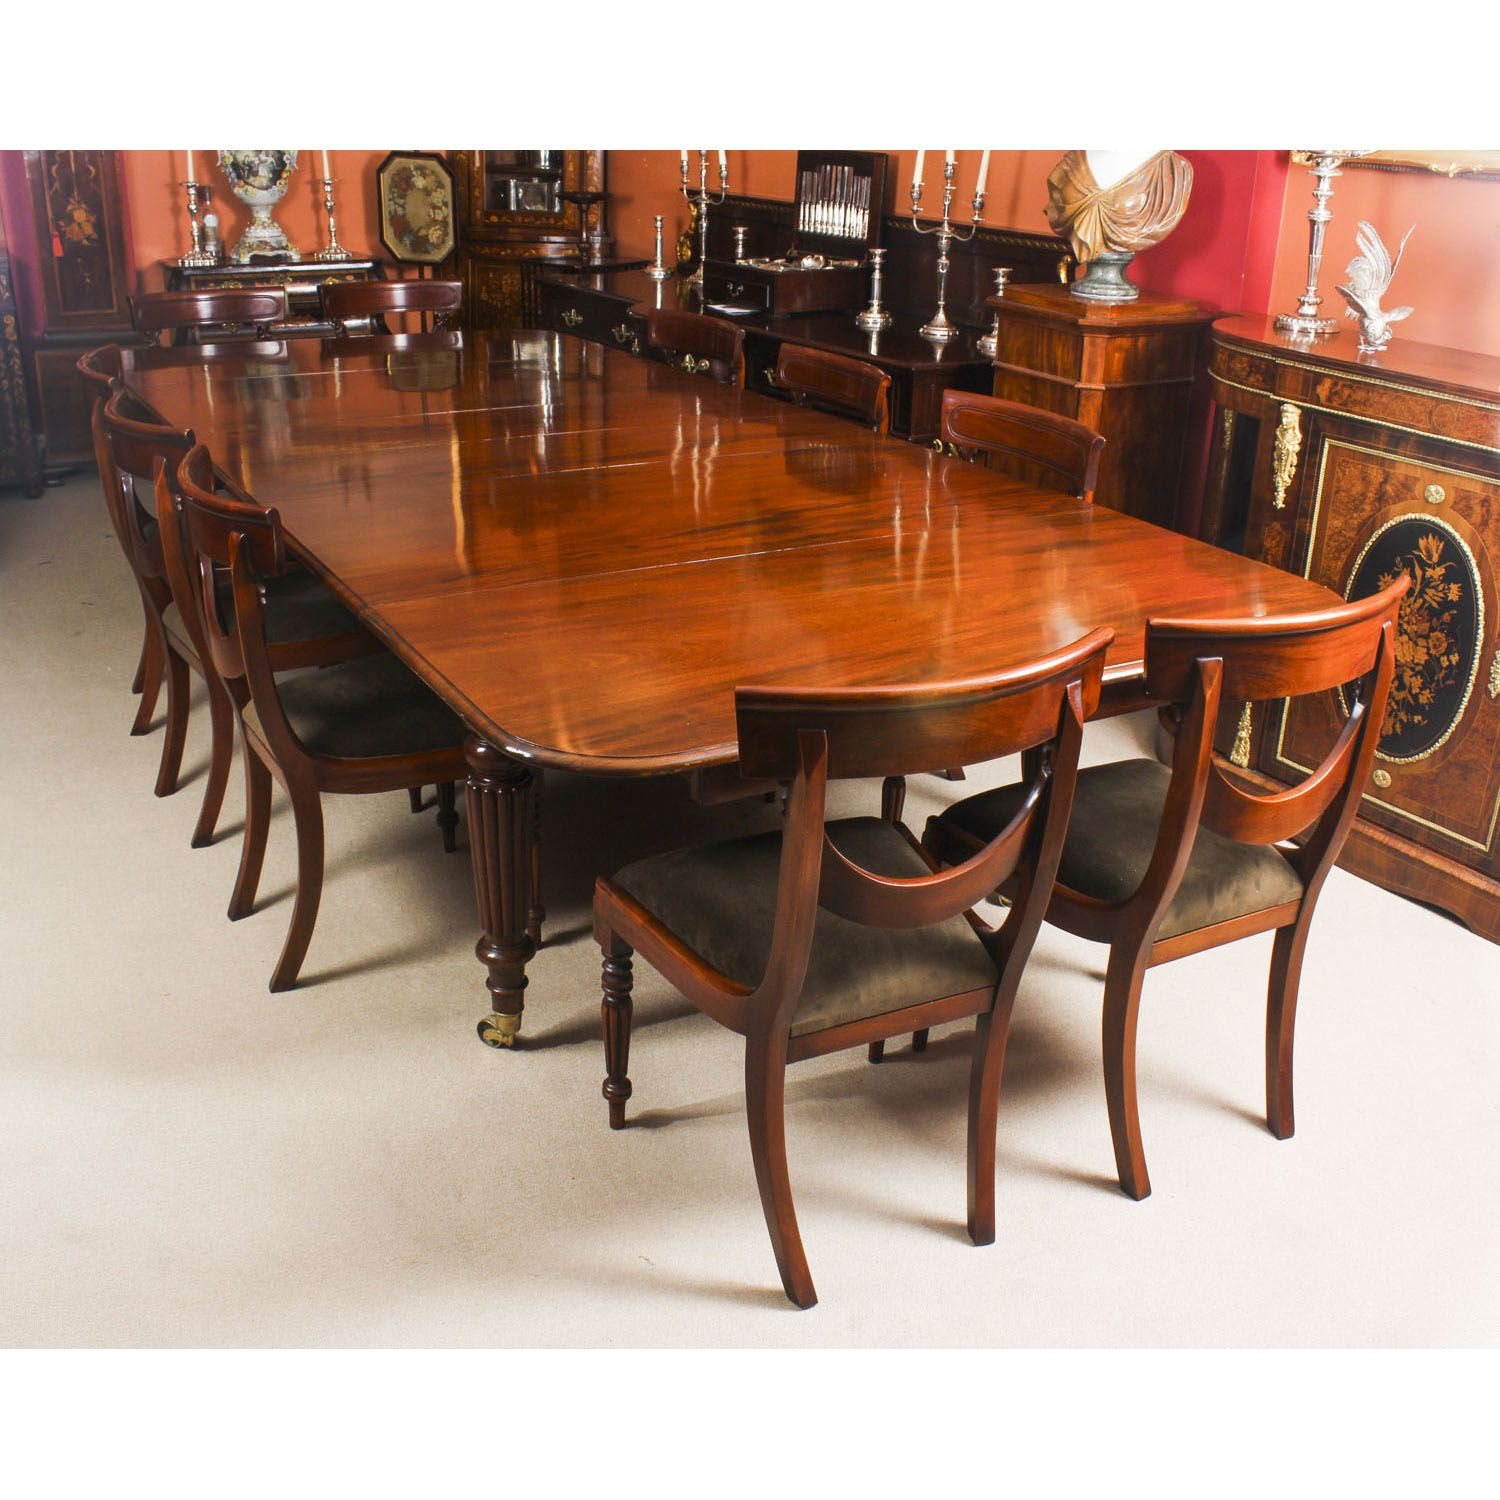 Antique 11 Ft Flame Mahogany Extending Dining Table C1840 10